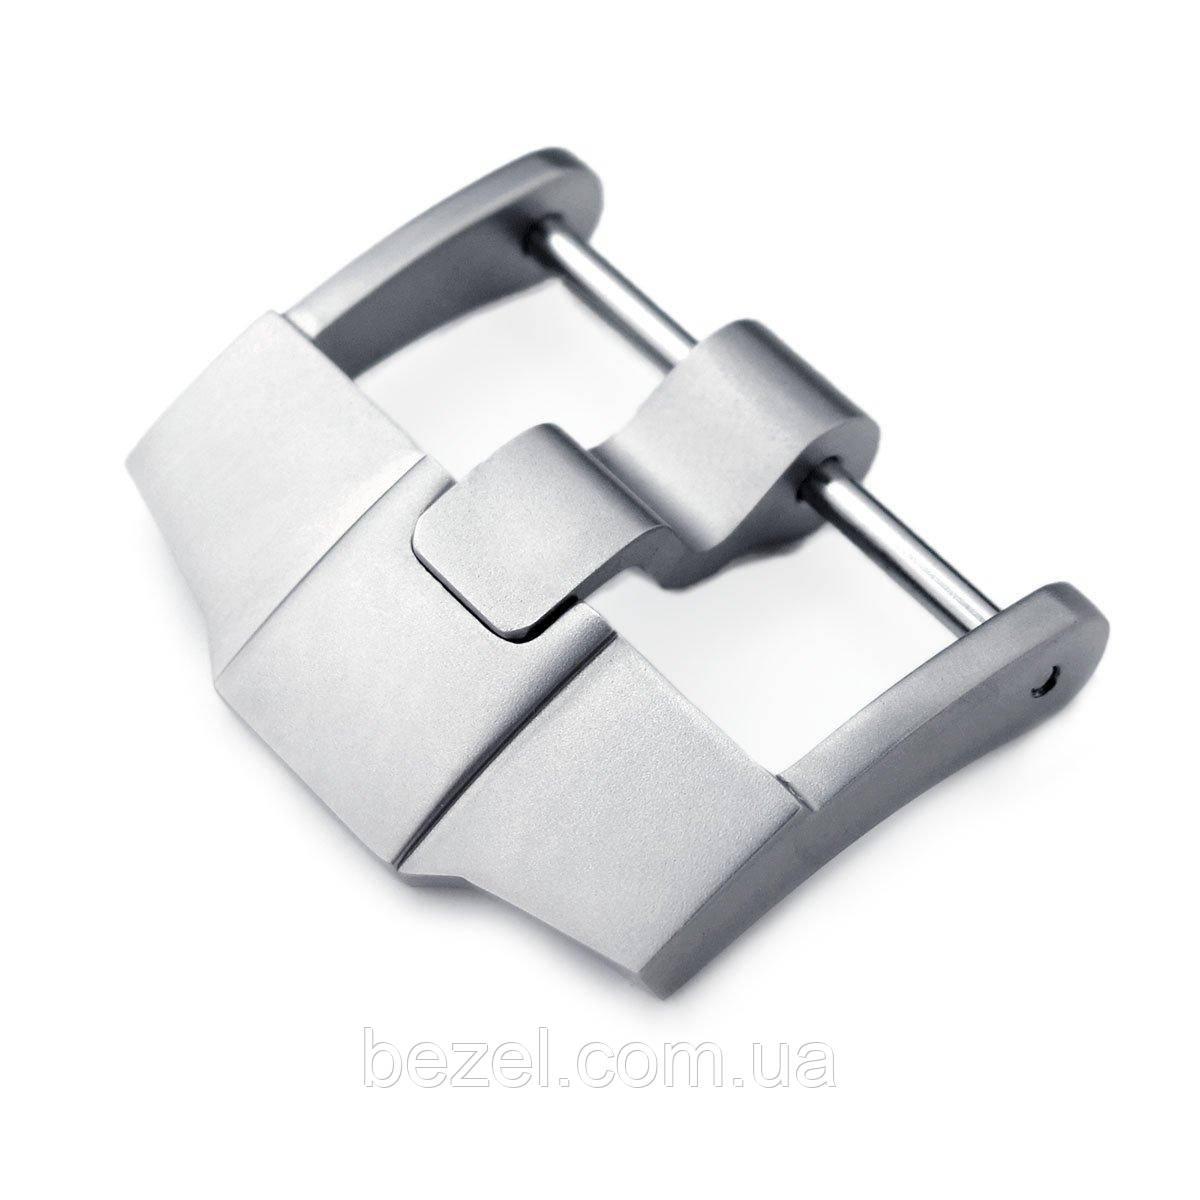 24mm High Quality 316L Stainless Steel Screw-in 6mm Tongue Sandblasted Buckle, designed for Audemars Piguet